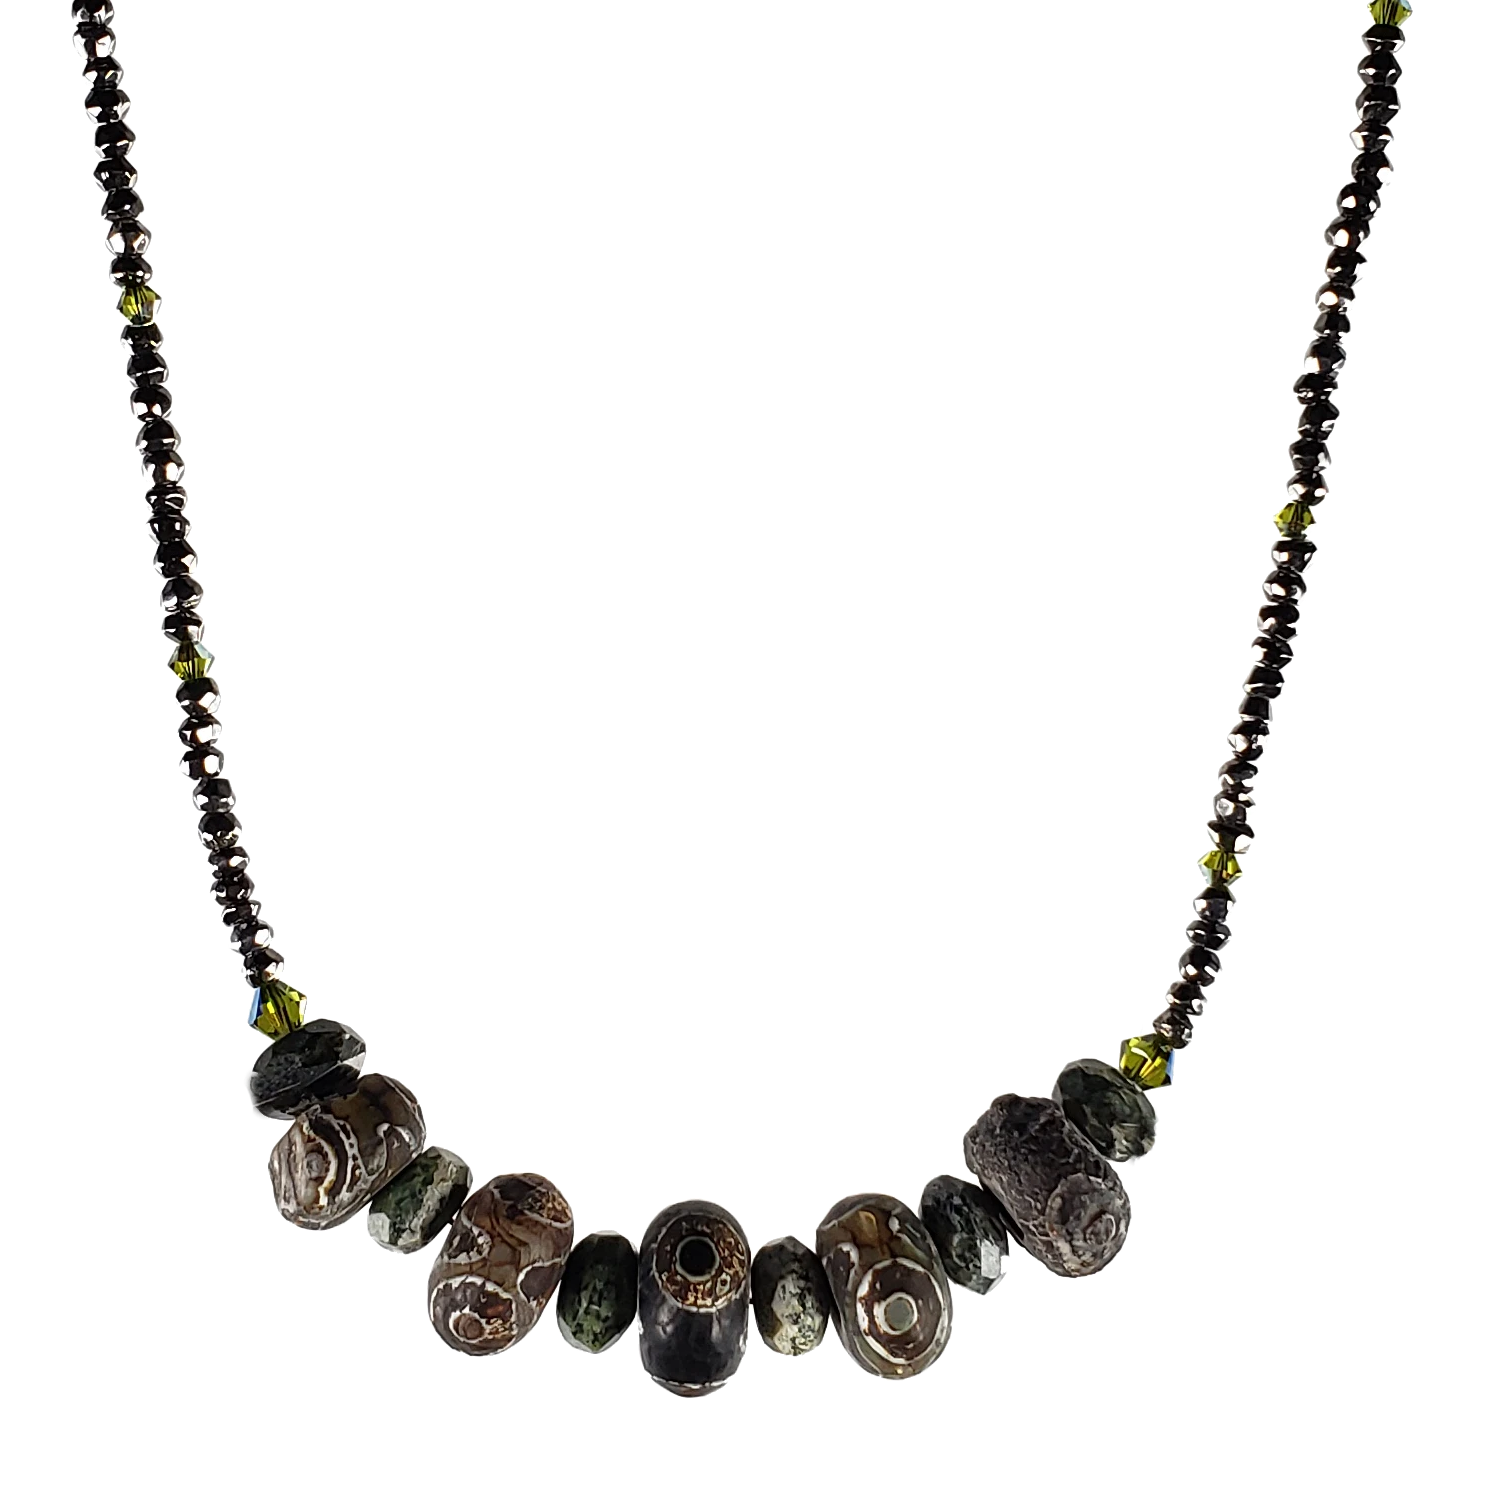 Zebra Stone, Dzi & Hematite Necklace